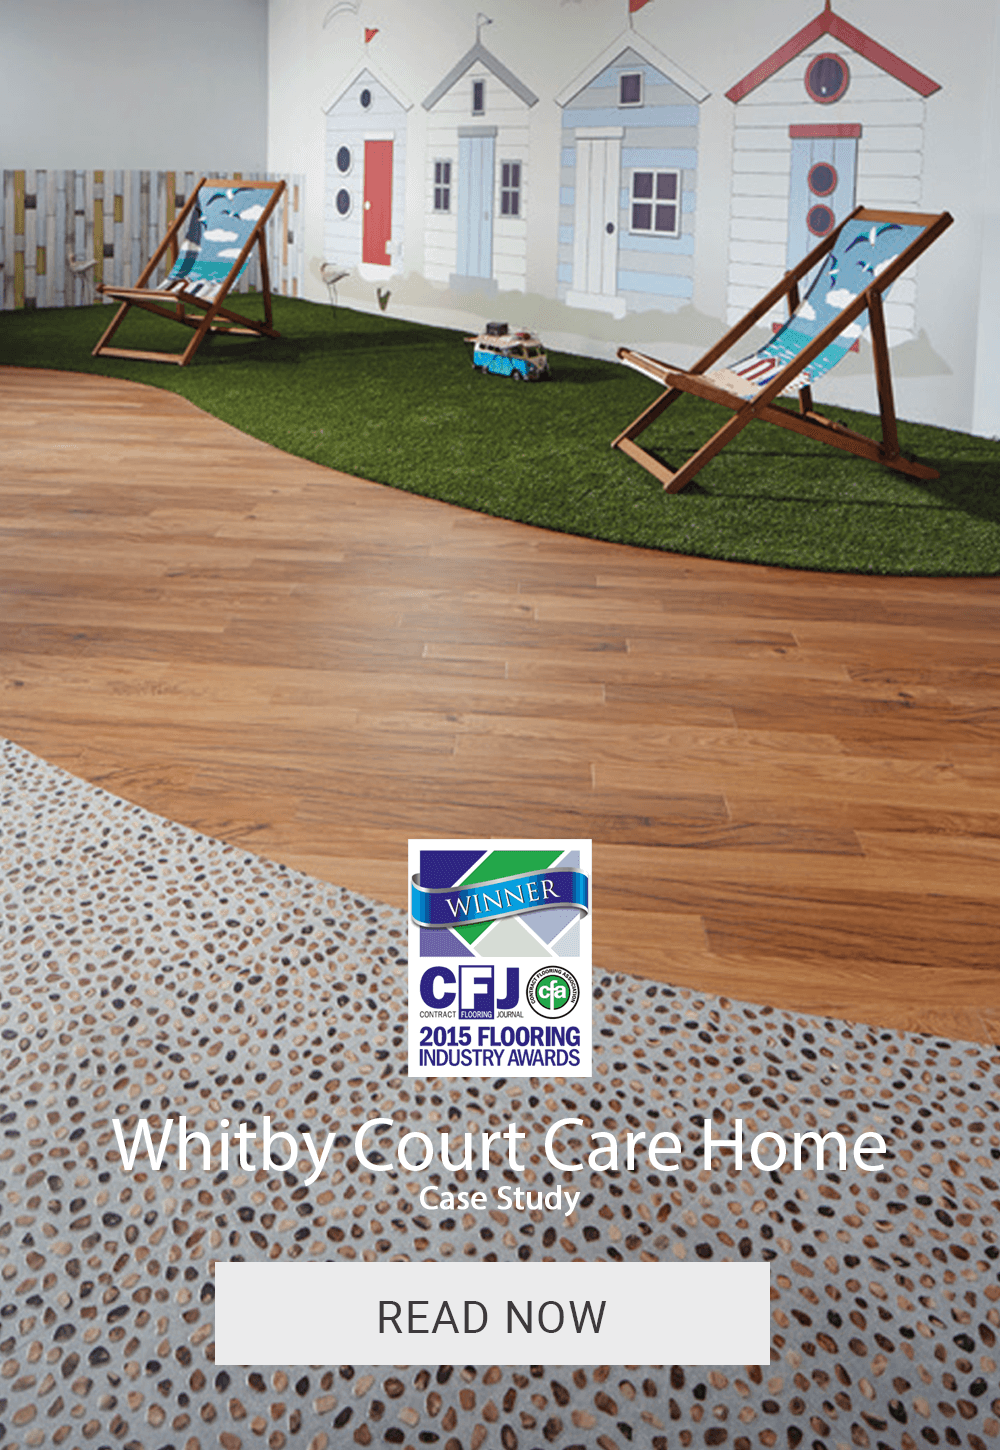 Whitby Court Care Home Case Study